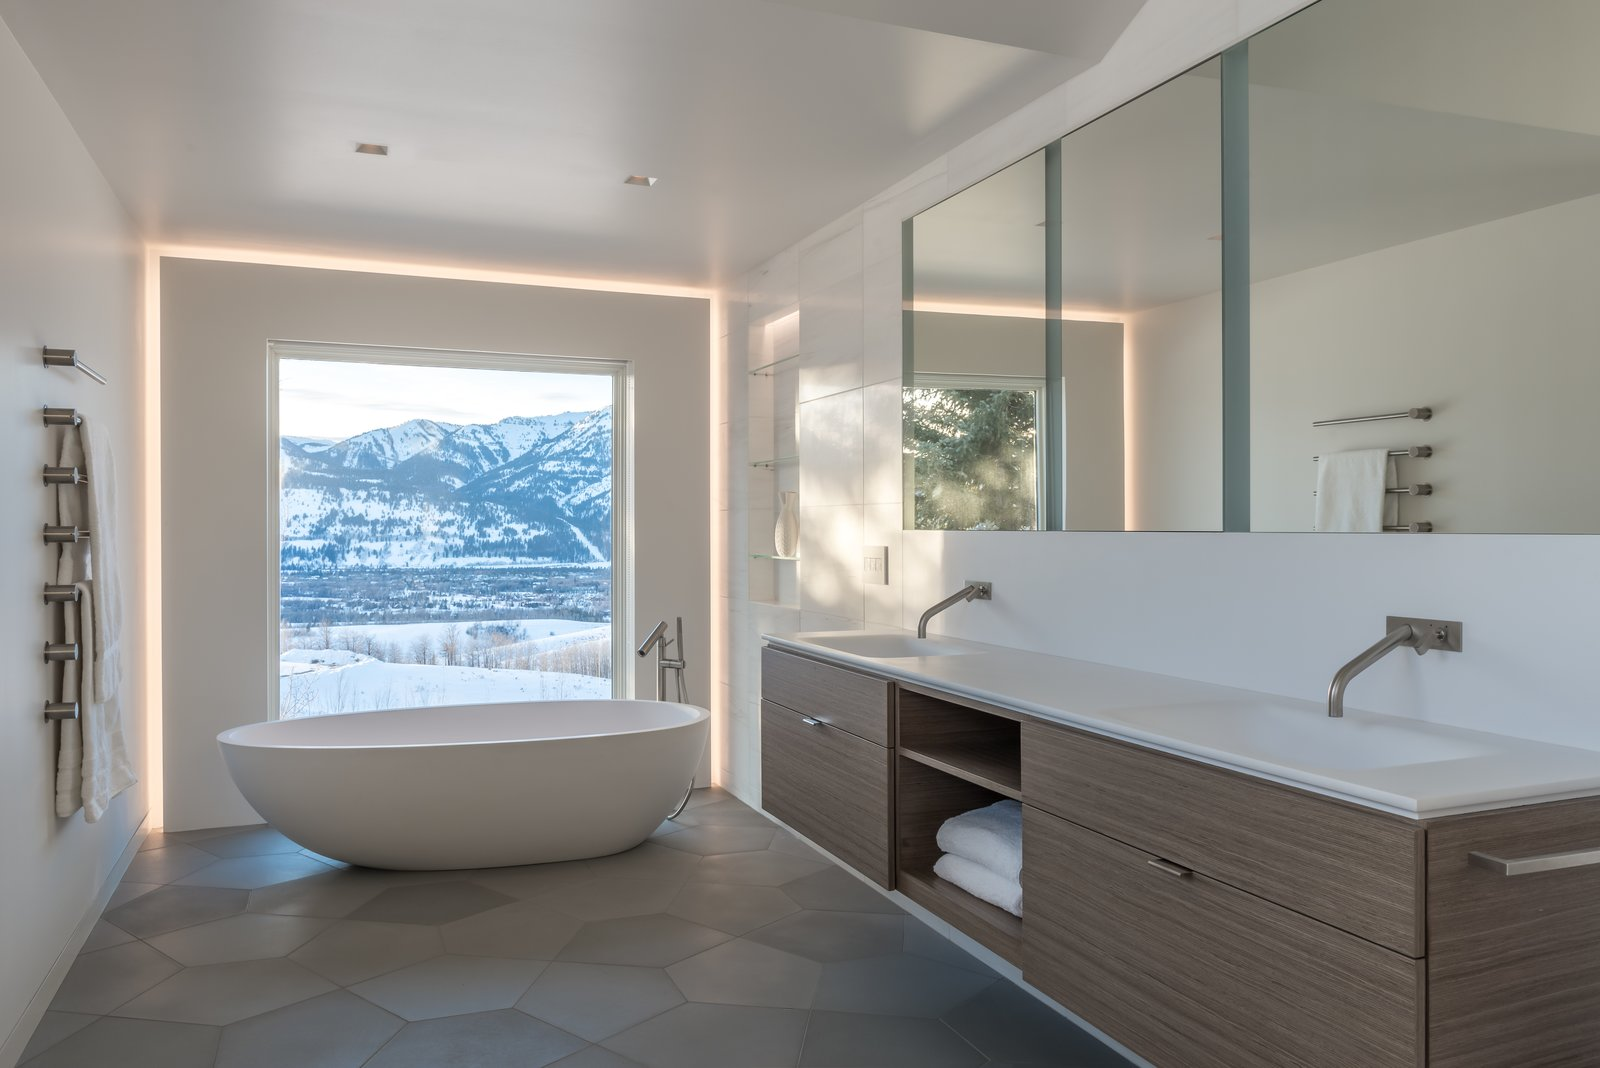 Previous master bathroom was divided into three separate spaces, with the mountain view terminating in a closet.  The walls were removed to open views to the west and create one large space.  Custom pentagon shaped concrete tiles compliment the Eco-Wood veneer floating vanity.  San Francisco Meets Jackson Hole in a Modern Renovation